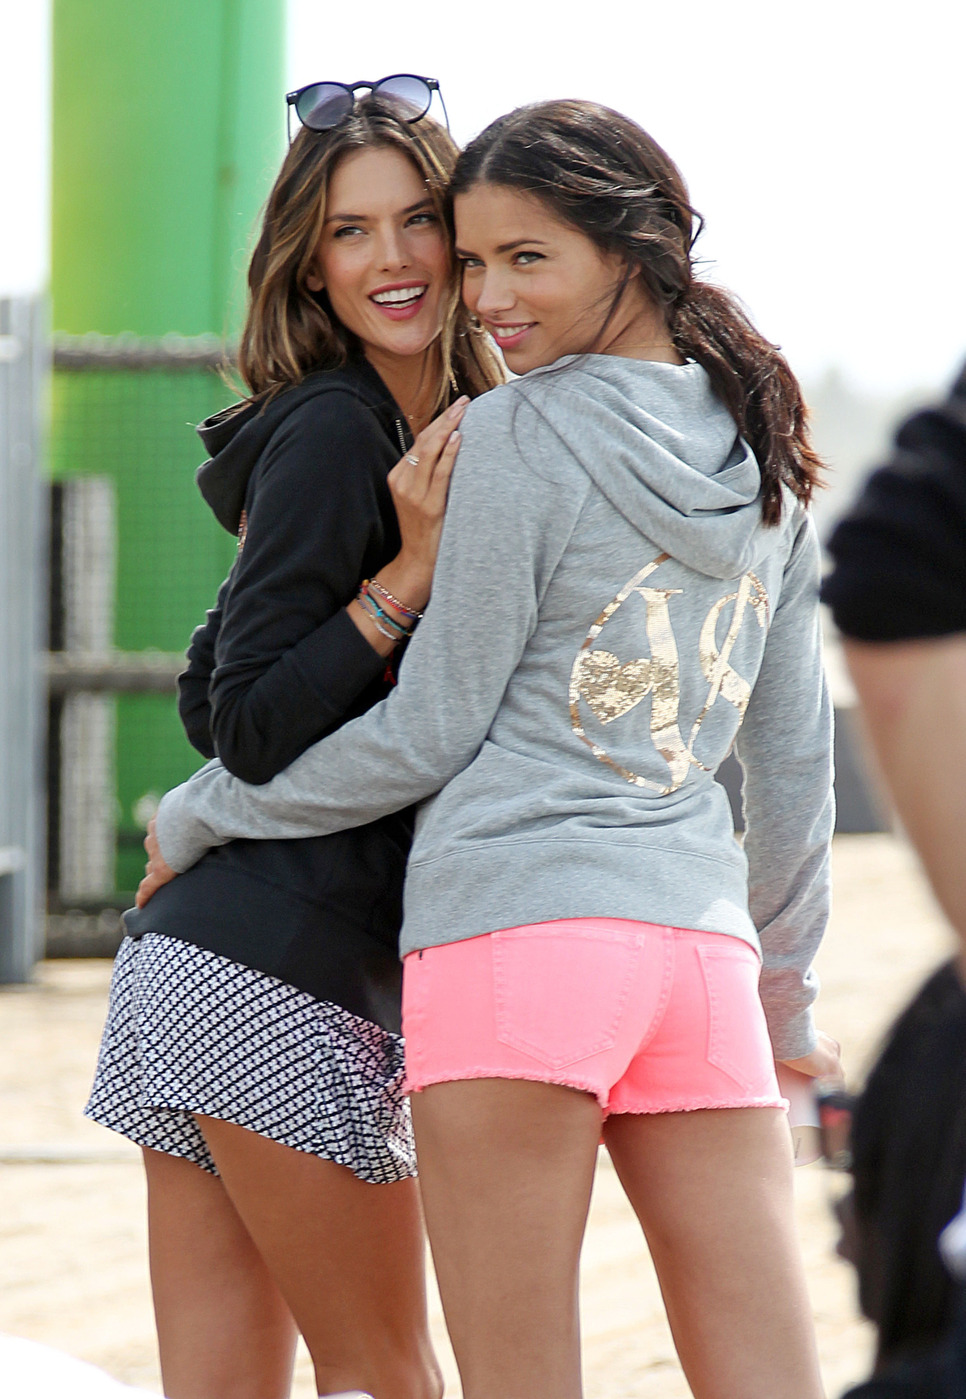 **EXCLUSIVE** Adriana Lima and Alessandra Ambrosio partner up for a Victorias Secret photo shoot in Los Angeles